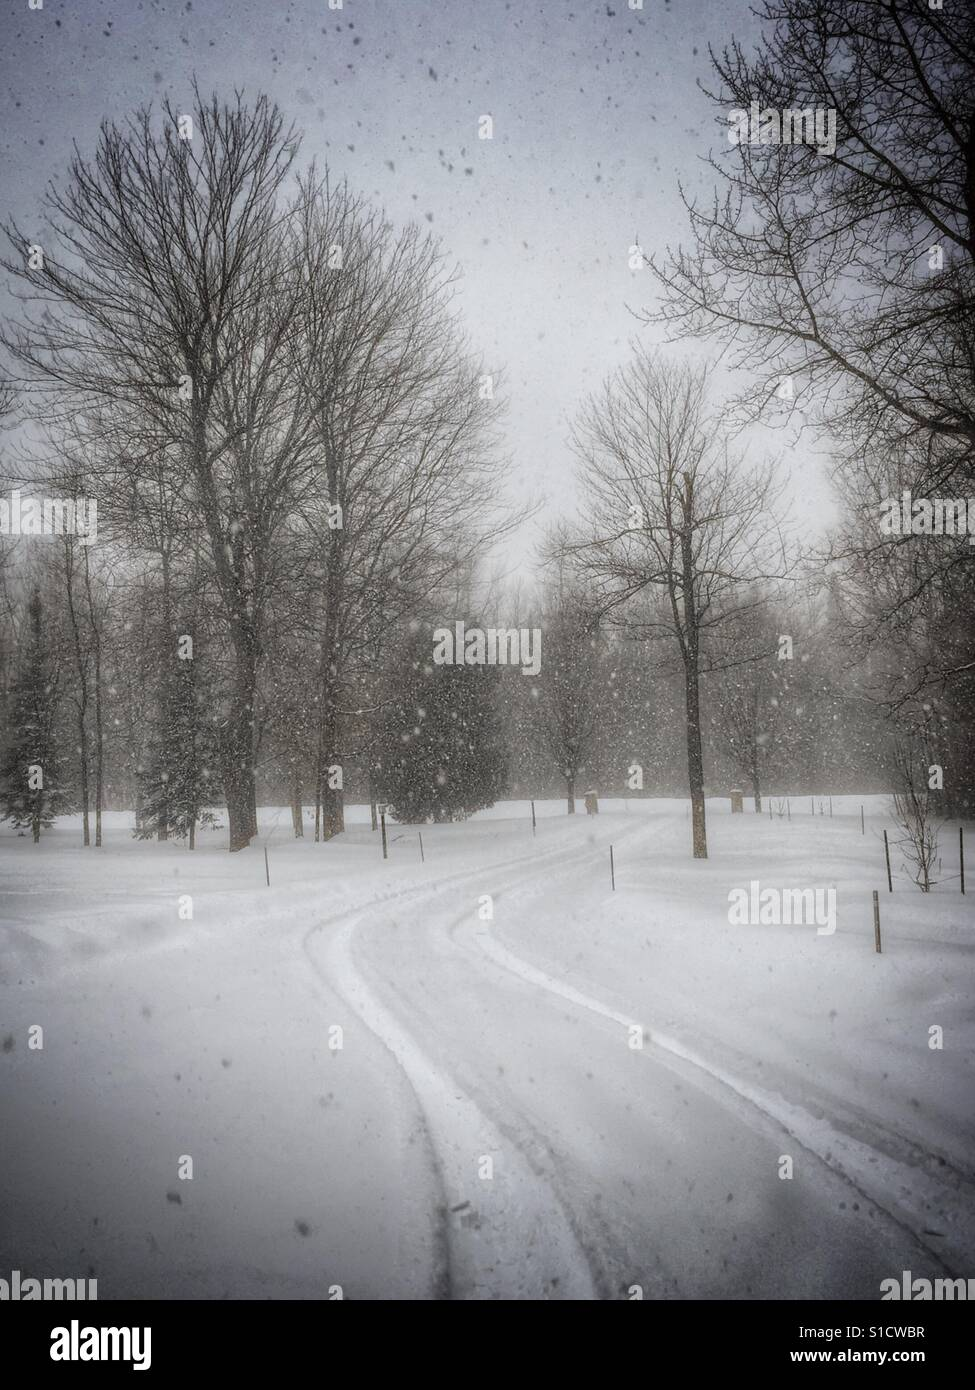 Snow fall on a winter day, tire tracks in the snow leading away. - Stock Image